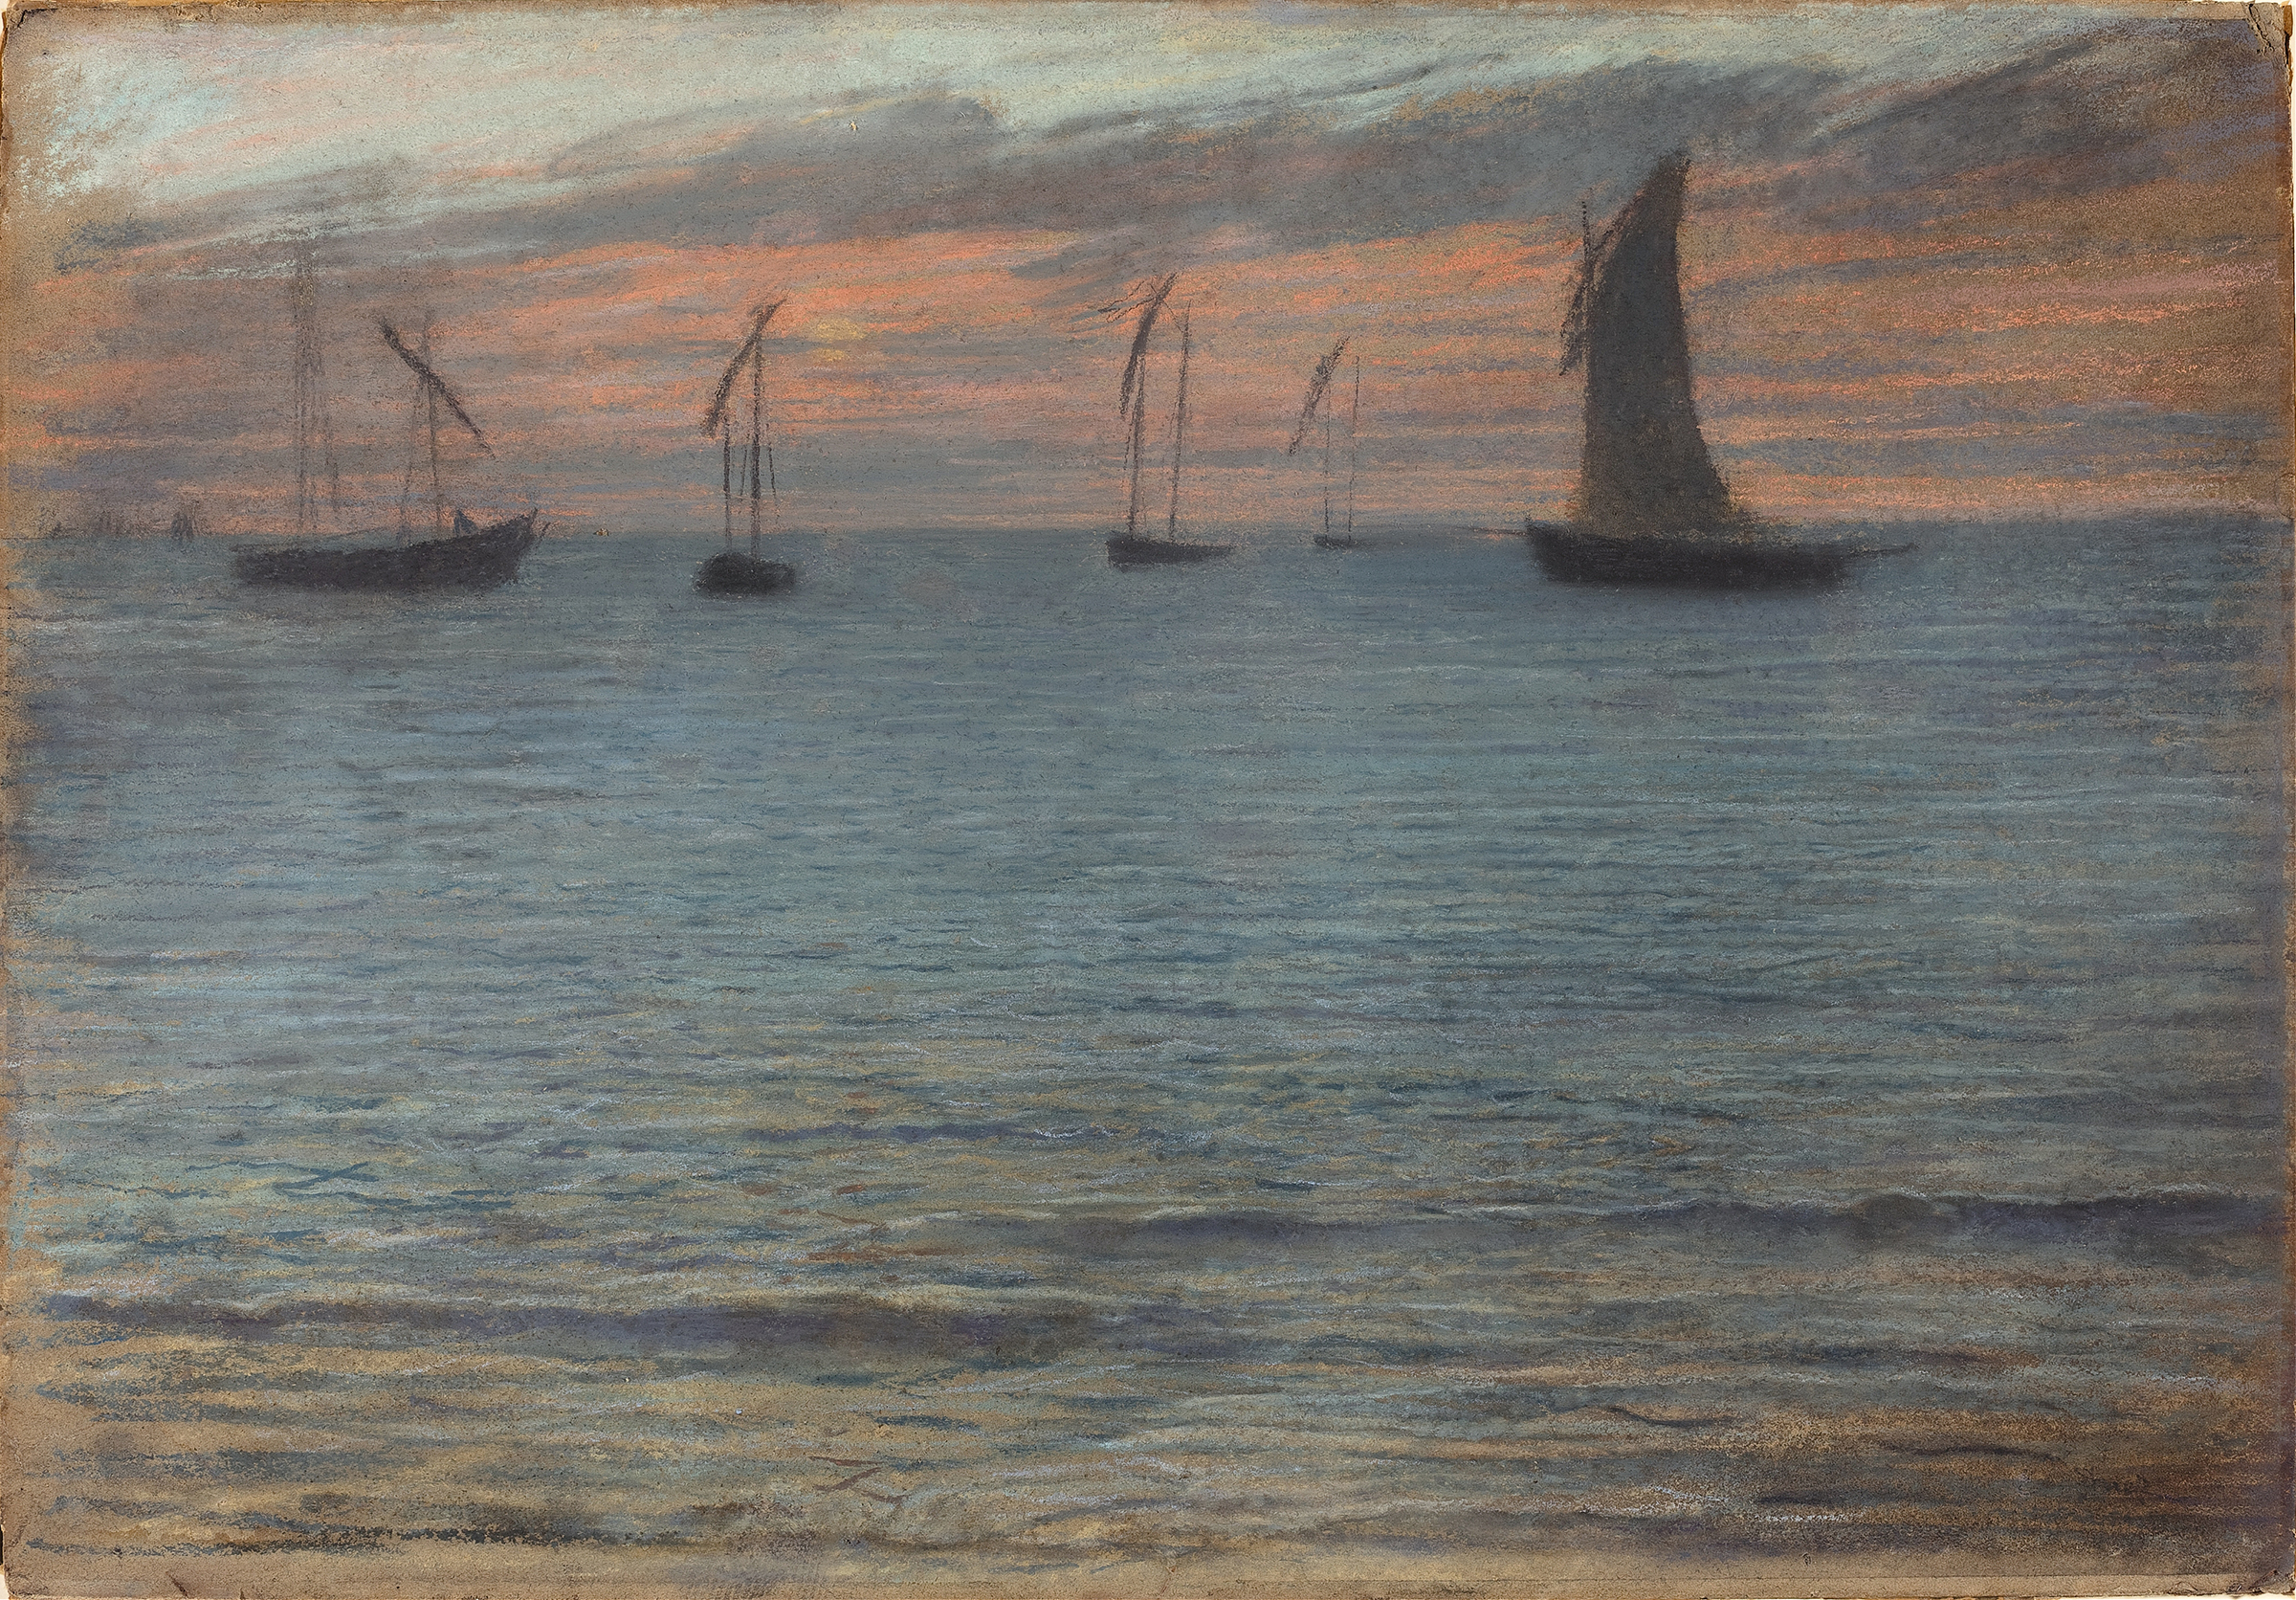 Painting of a seascape at sunset